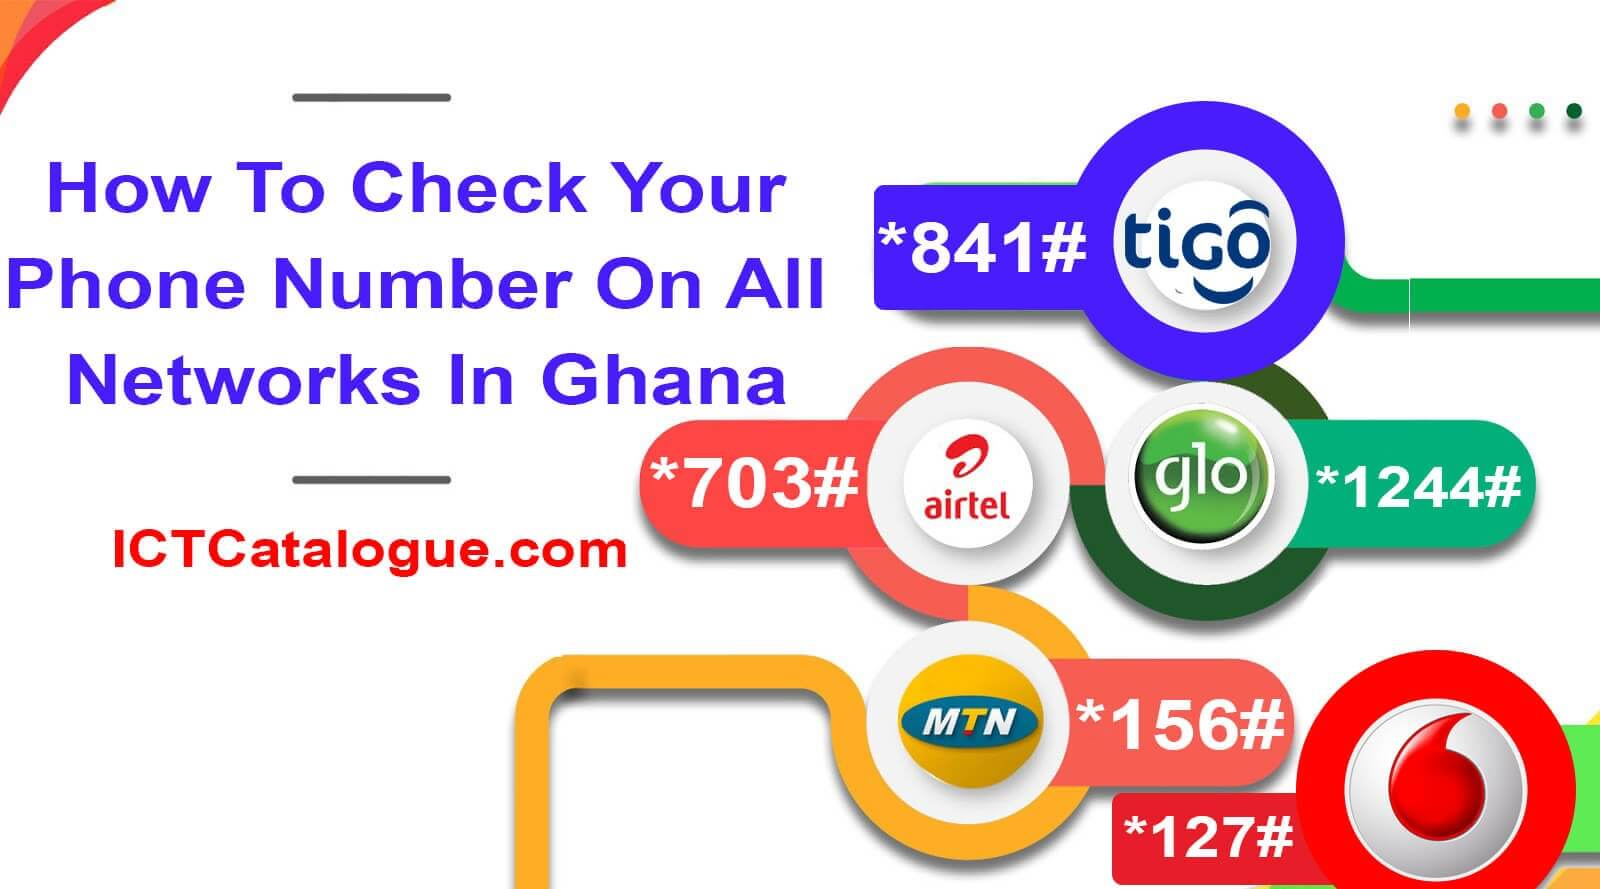 How To Check Your Phone Number On Any Network In Ghana